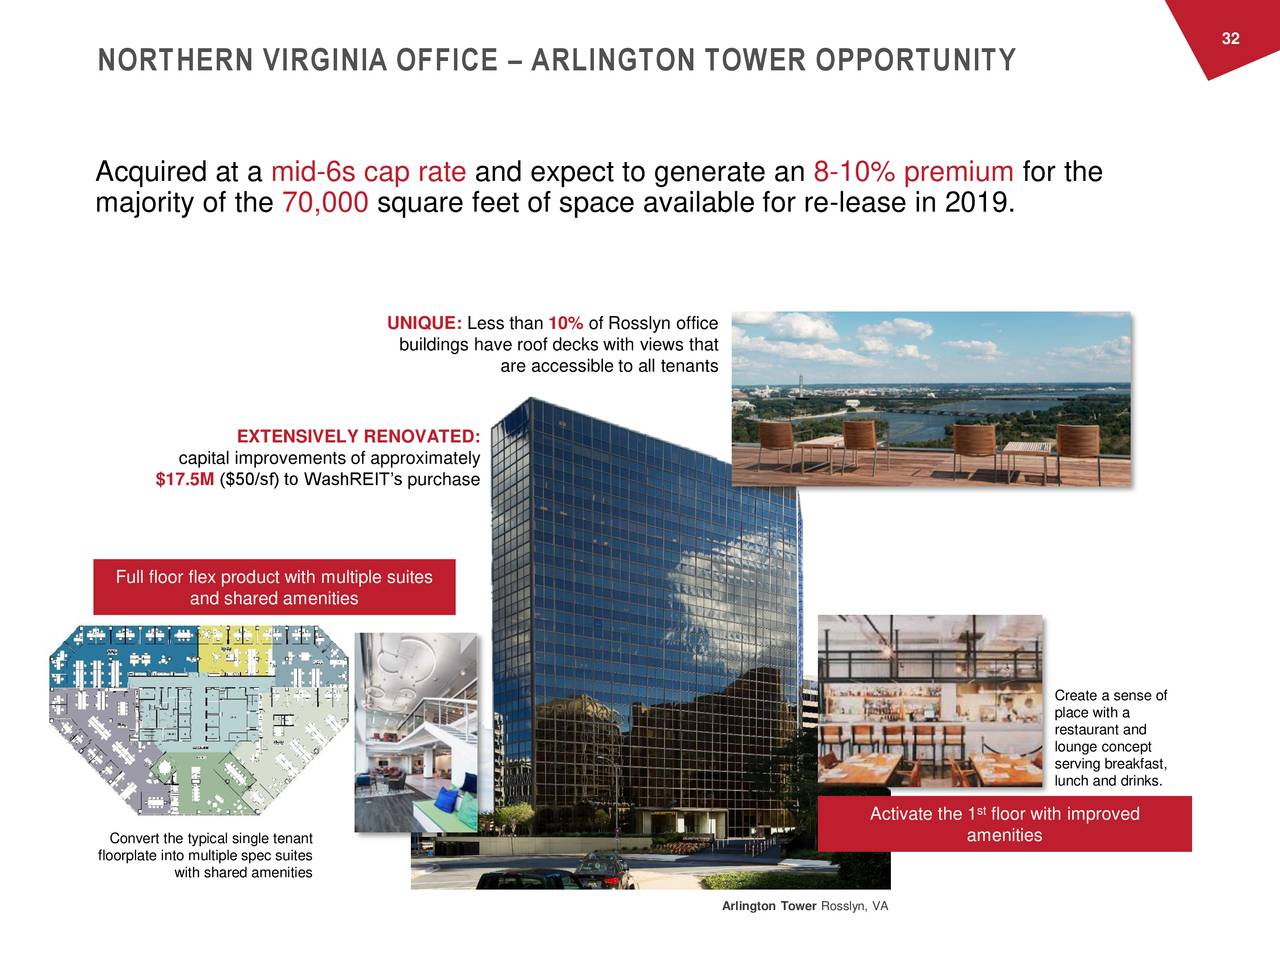 NORTHERN VIRGINIA OFFICE – ARLINGTON TOWER OPPORTUNITY Acquired at a mid-6s cap rate and expect to generate an 8-10% premium for the majority of the 70,000 square feet of space available for re-lease in 2019. UNIQUE: Less than 10% of Rosslyn office buildings have roof decks with views that are accessible to all tenants EXTENSIVELY RENOVATED: capital improvements of approximately $17.5M ($50/sf) to WashREIT's purchase Full floor flex product with multiple suites and shared amenities Create a sense of place with a restaurant and lounge concept serving breakfast, lunch and drinks. st Activate the 1 floor with improved Convert the typical single tenant amenities floorplate into multiple spec suites with shared amenities Arlington Tower Rosslyn, VA